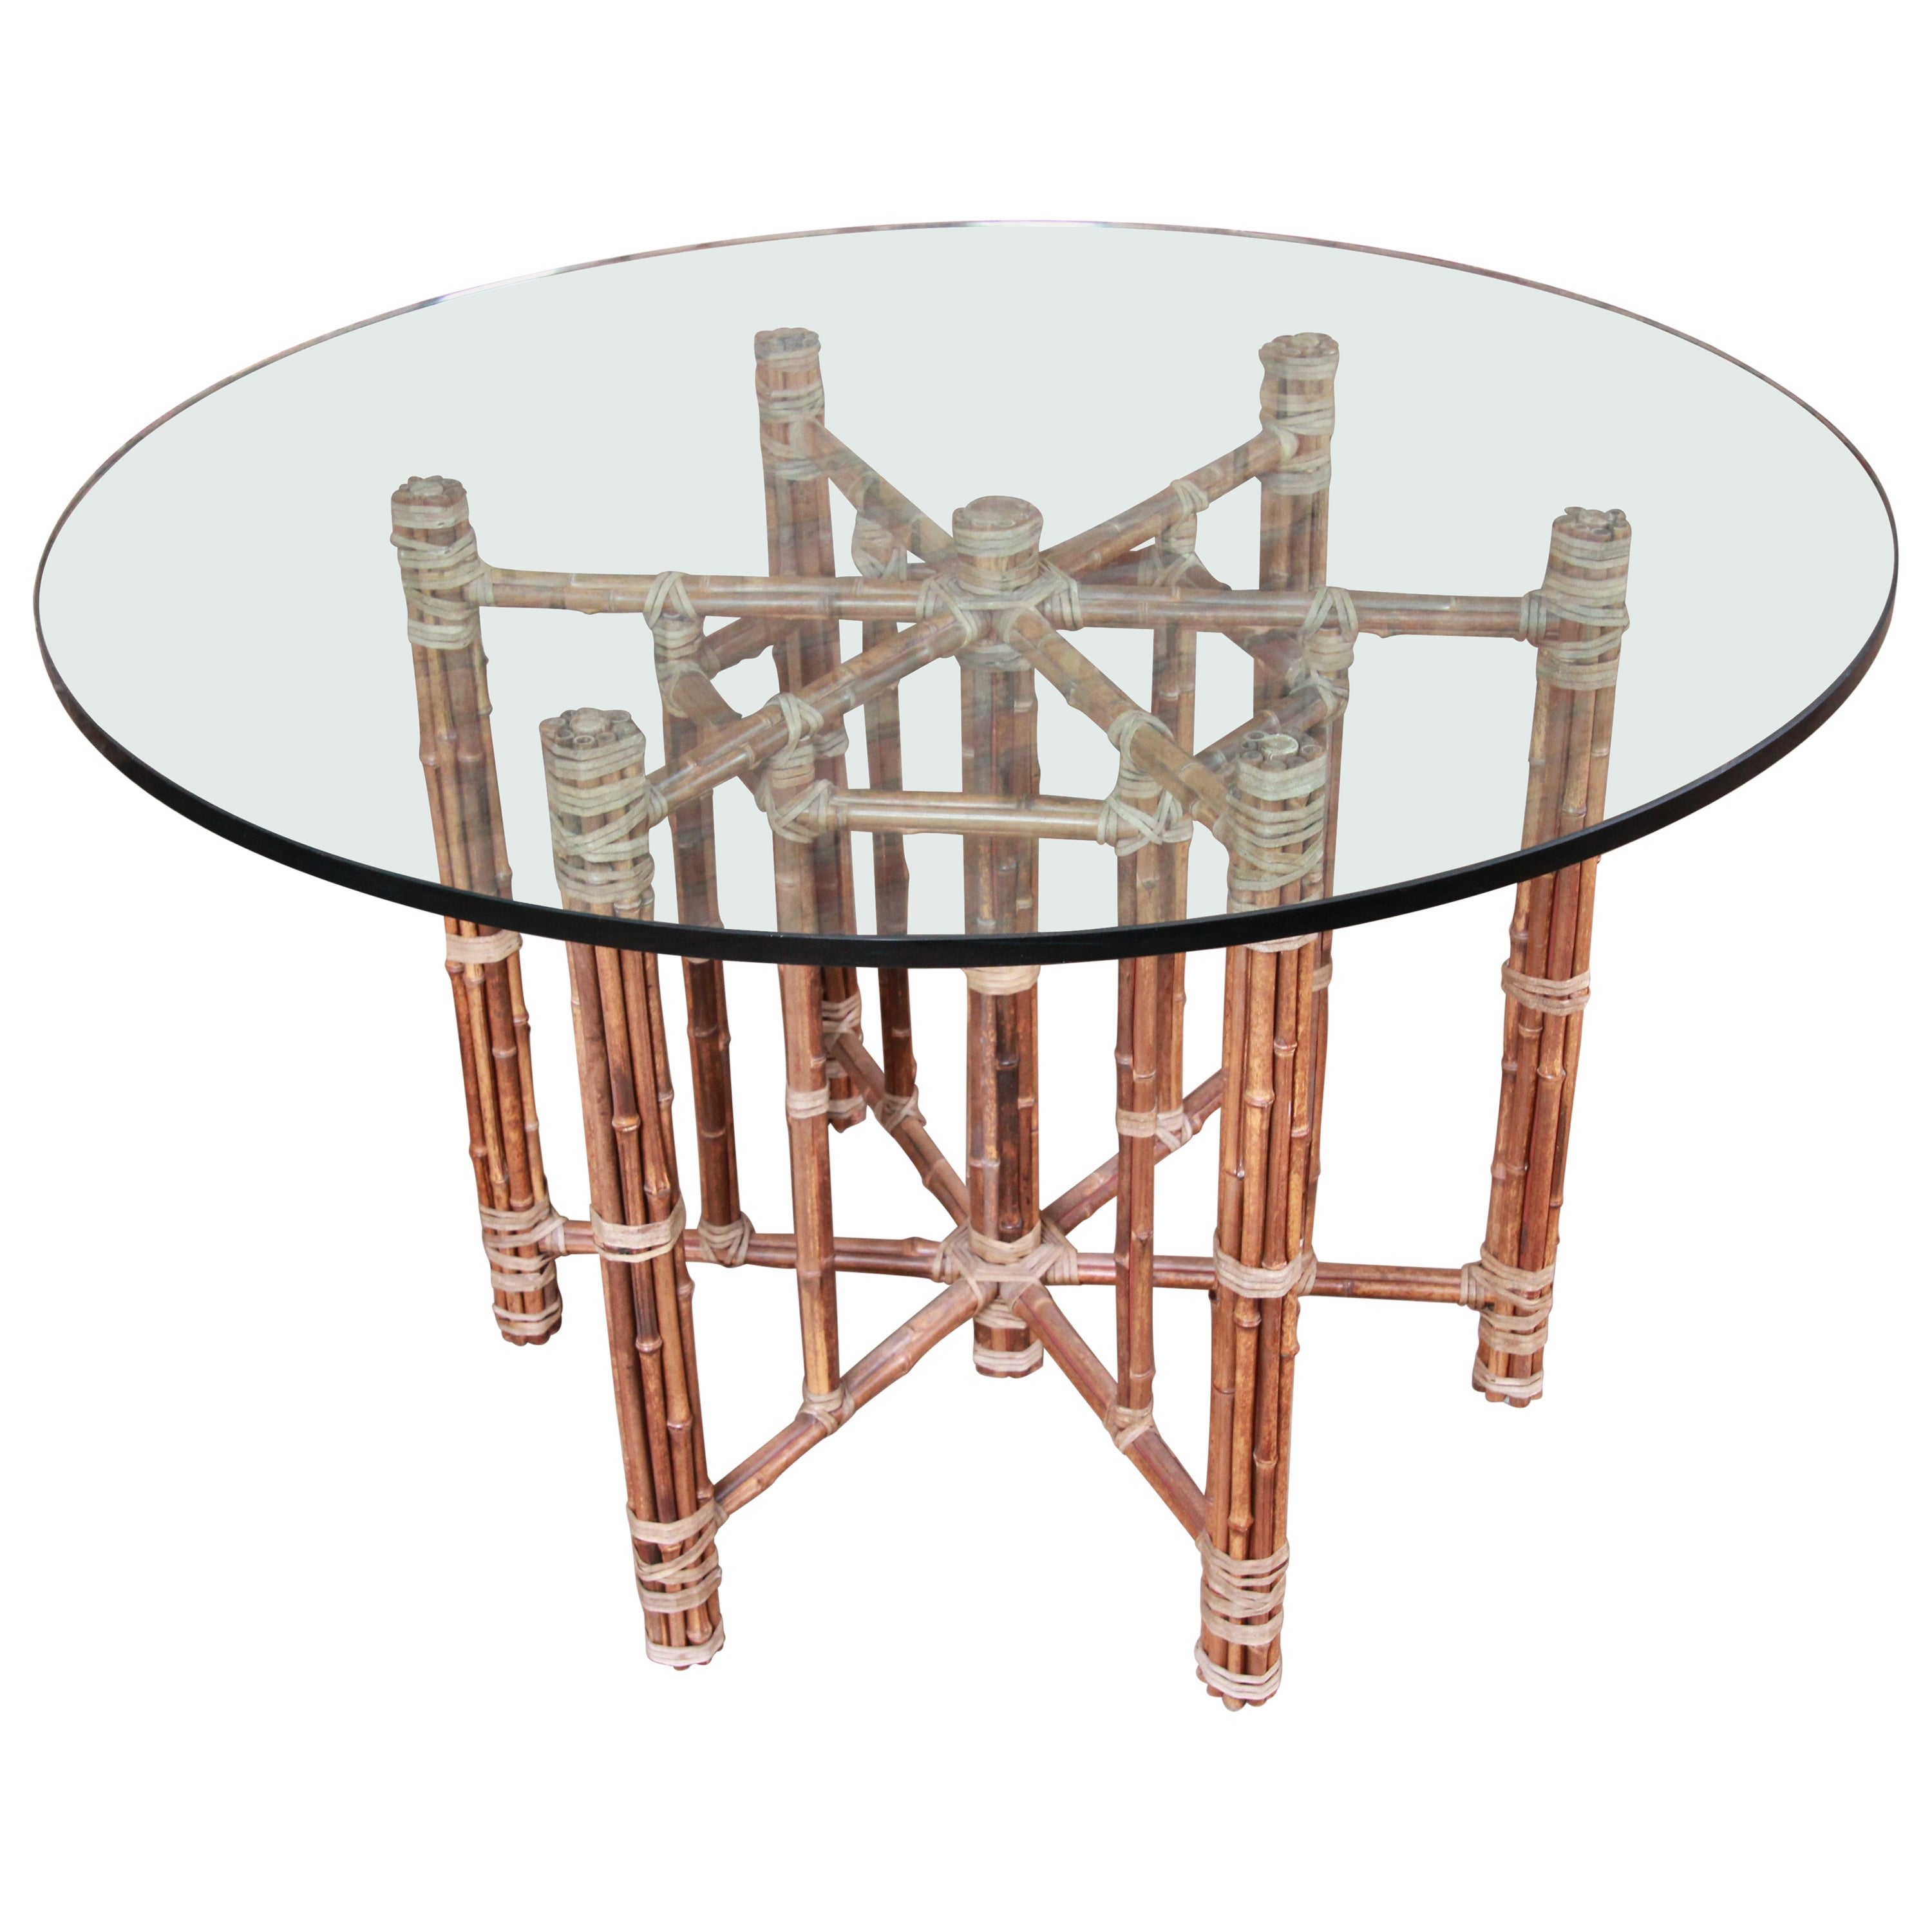 McGuire Organic Modern Bamboo, Rattan, and Leather Glass Top Dining Table